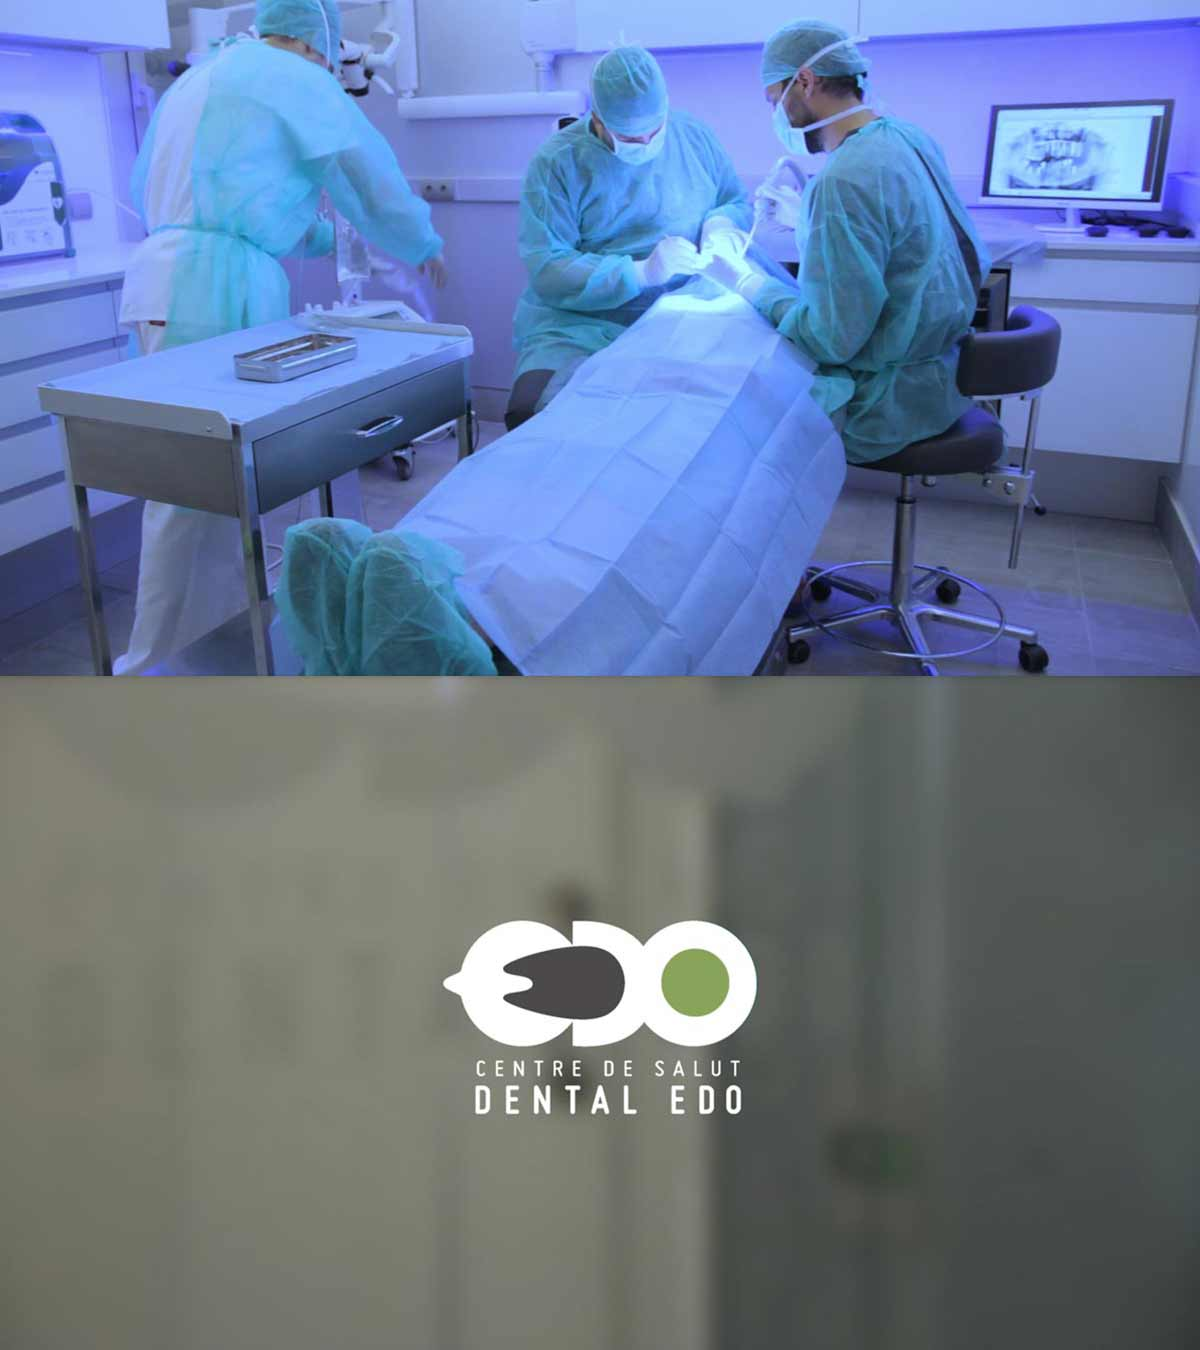 centre-salut-dental-edo-mu-studio-video-sebastian-murra-albert-esteve